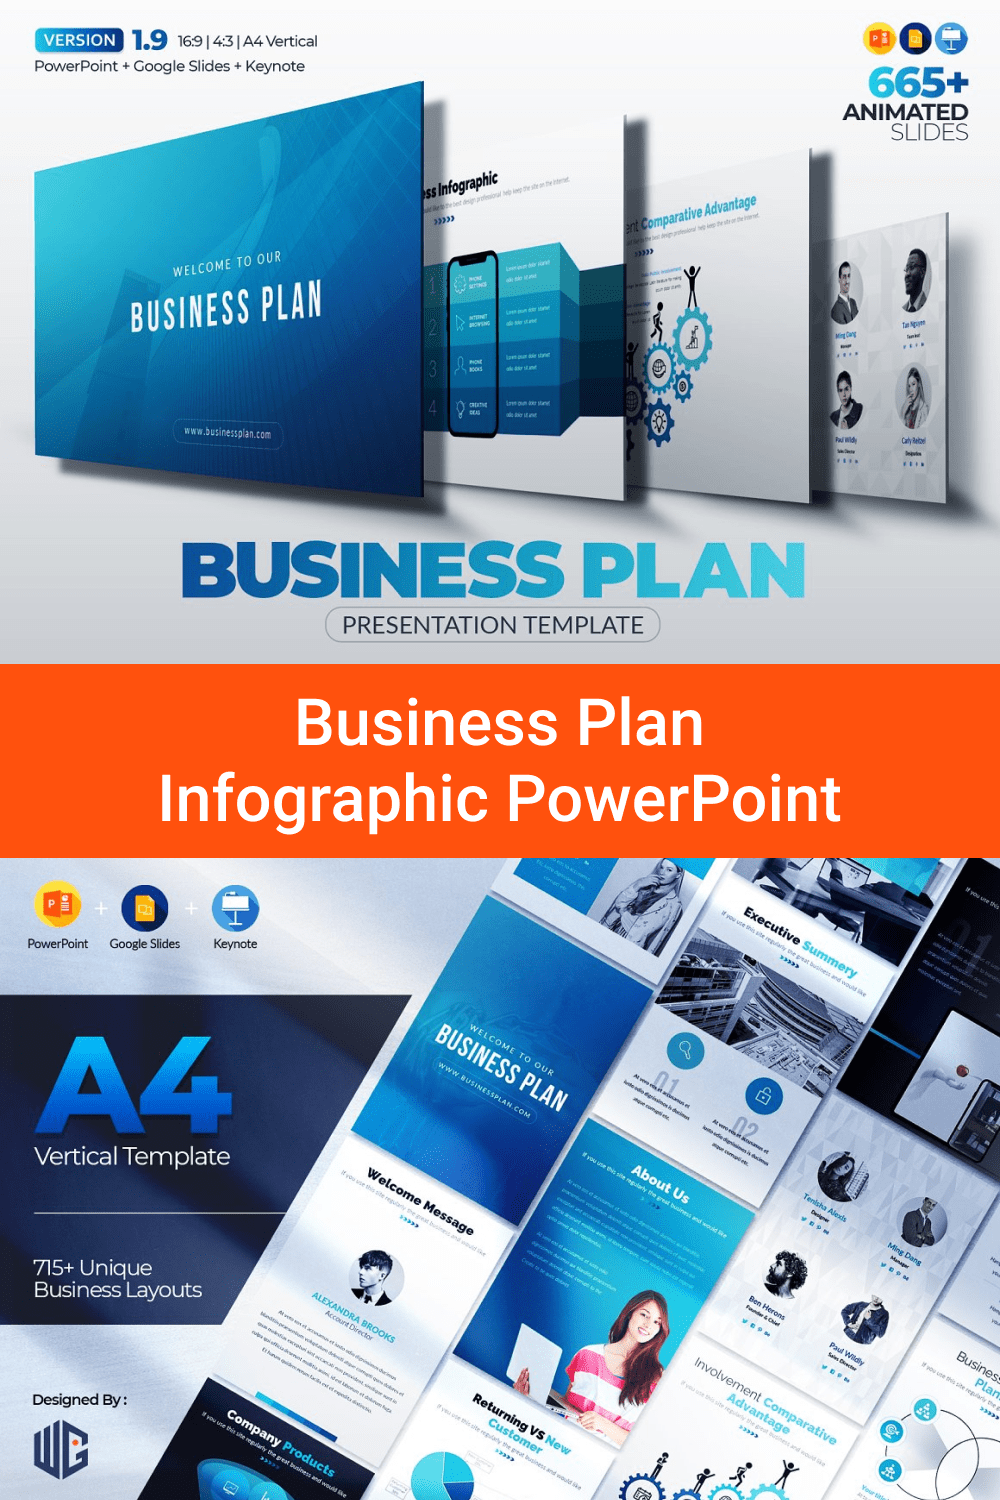 Business Plan Infographic PowerPoint.